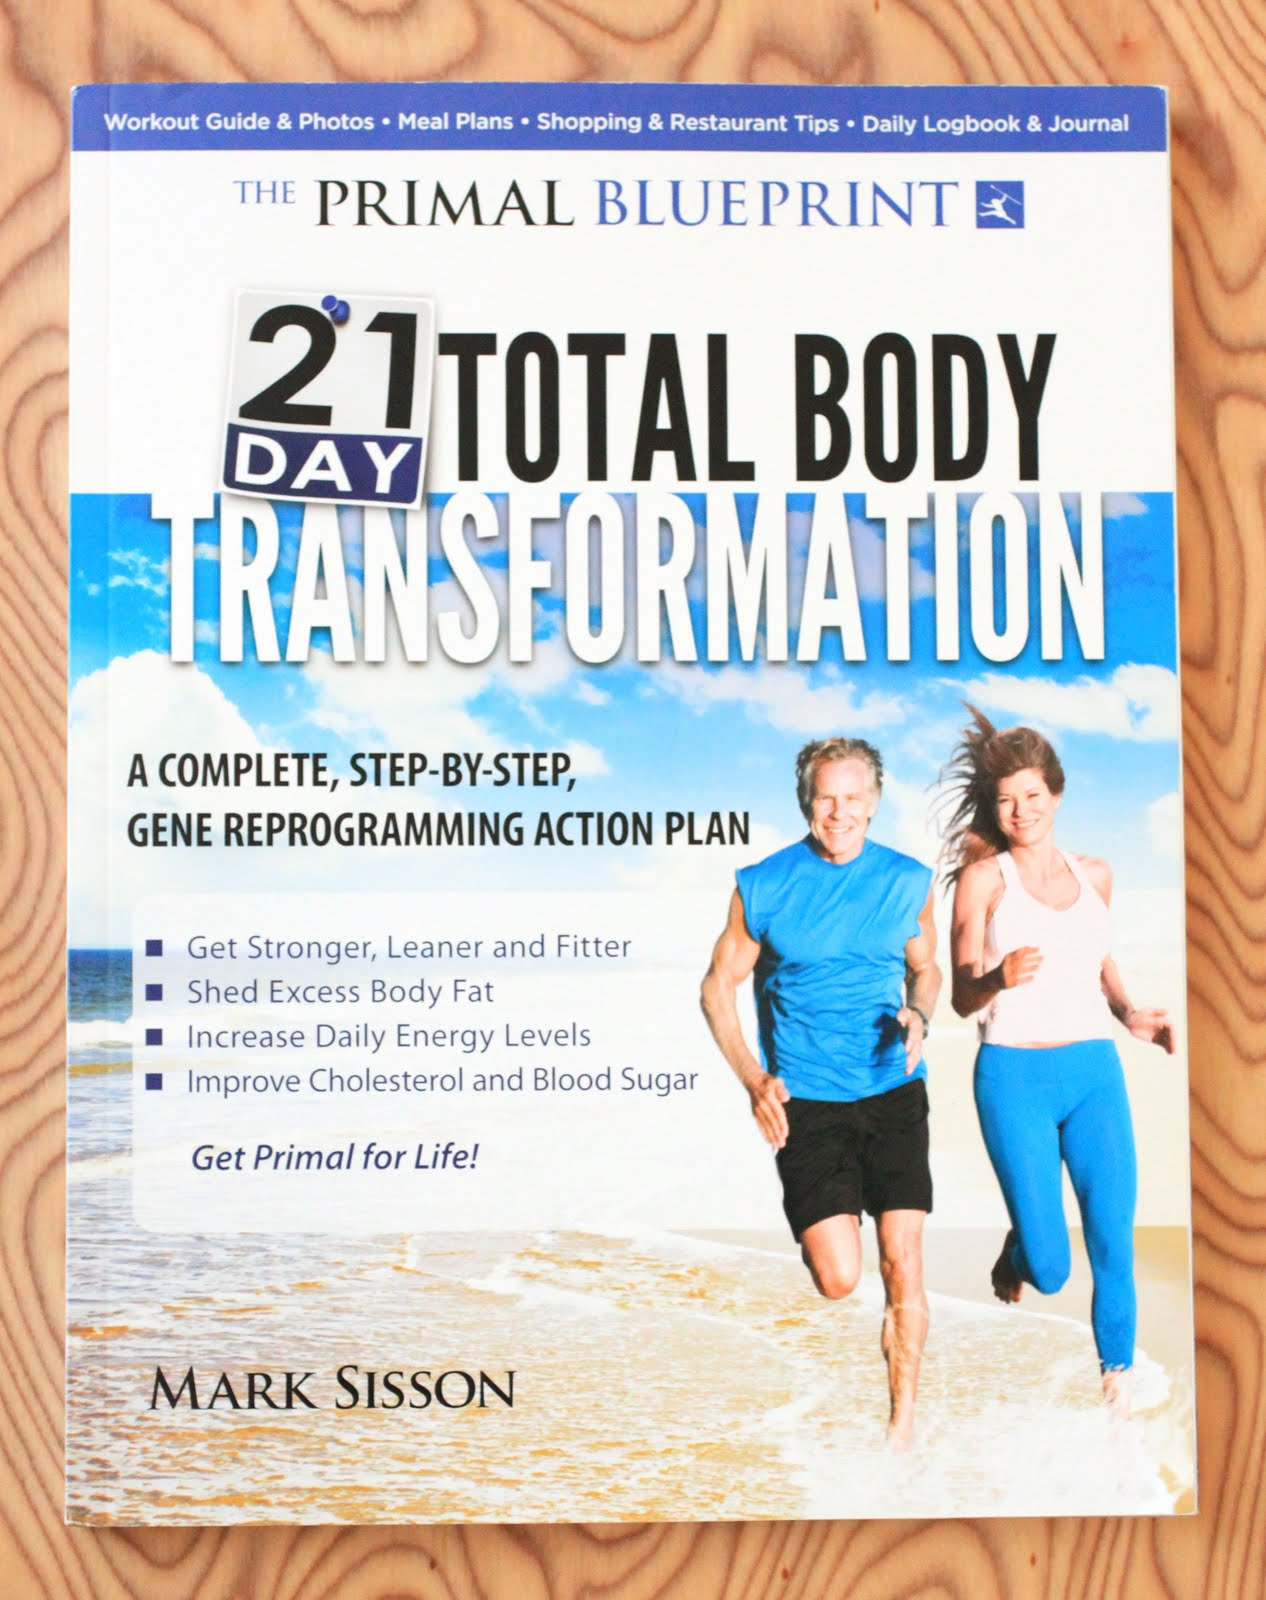 Primal Blueprint 21 Day Total Body Transformation – by Mark Sisson